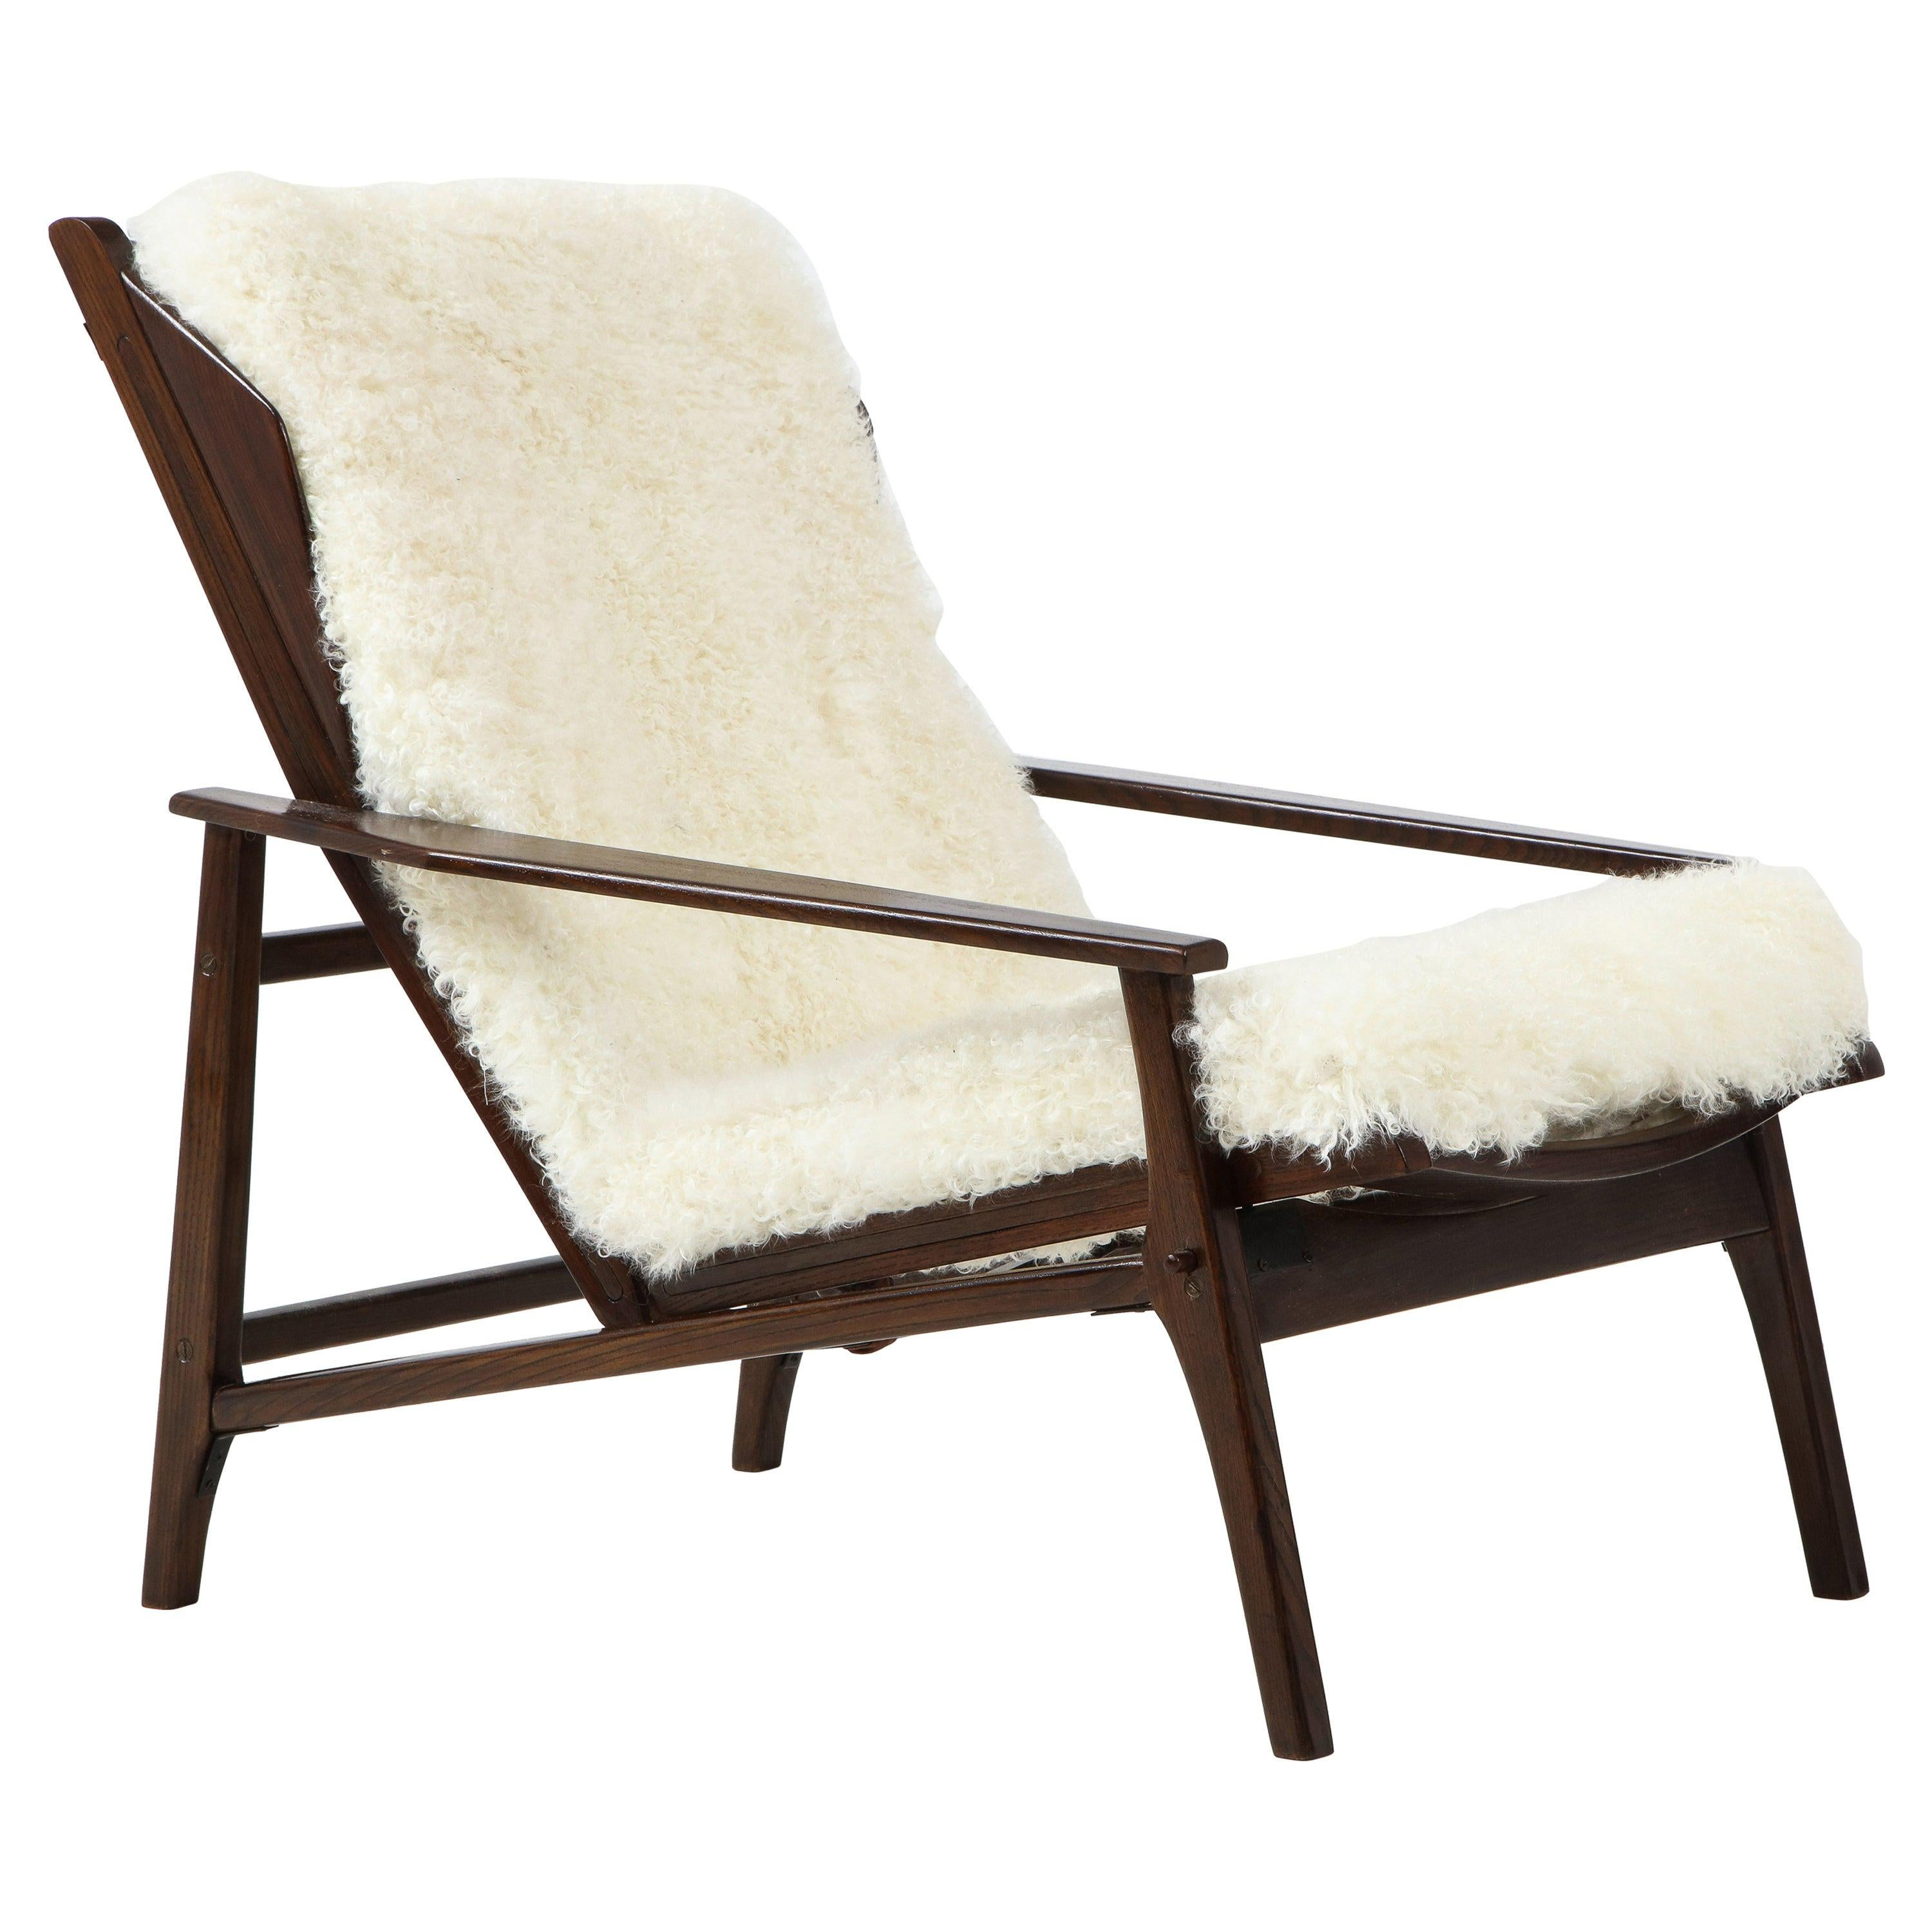 1950s Italian Reclining Lounge Chair in White Lambskin